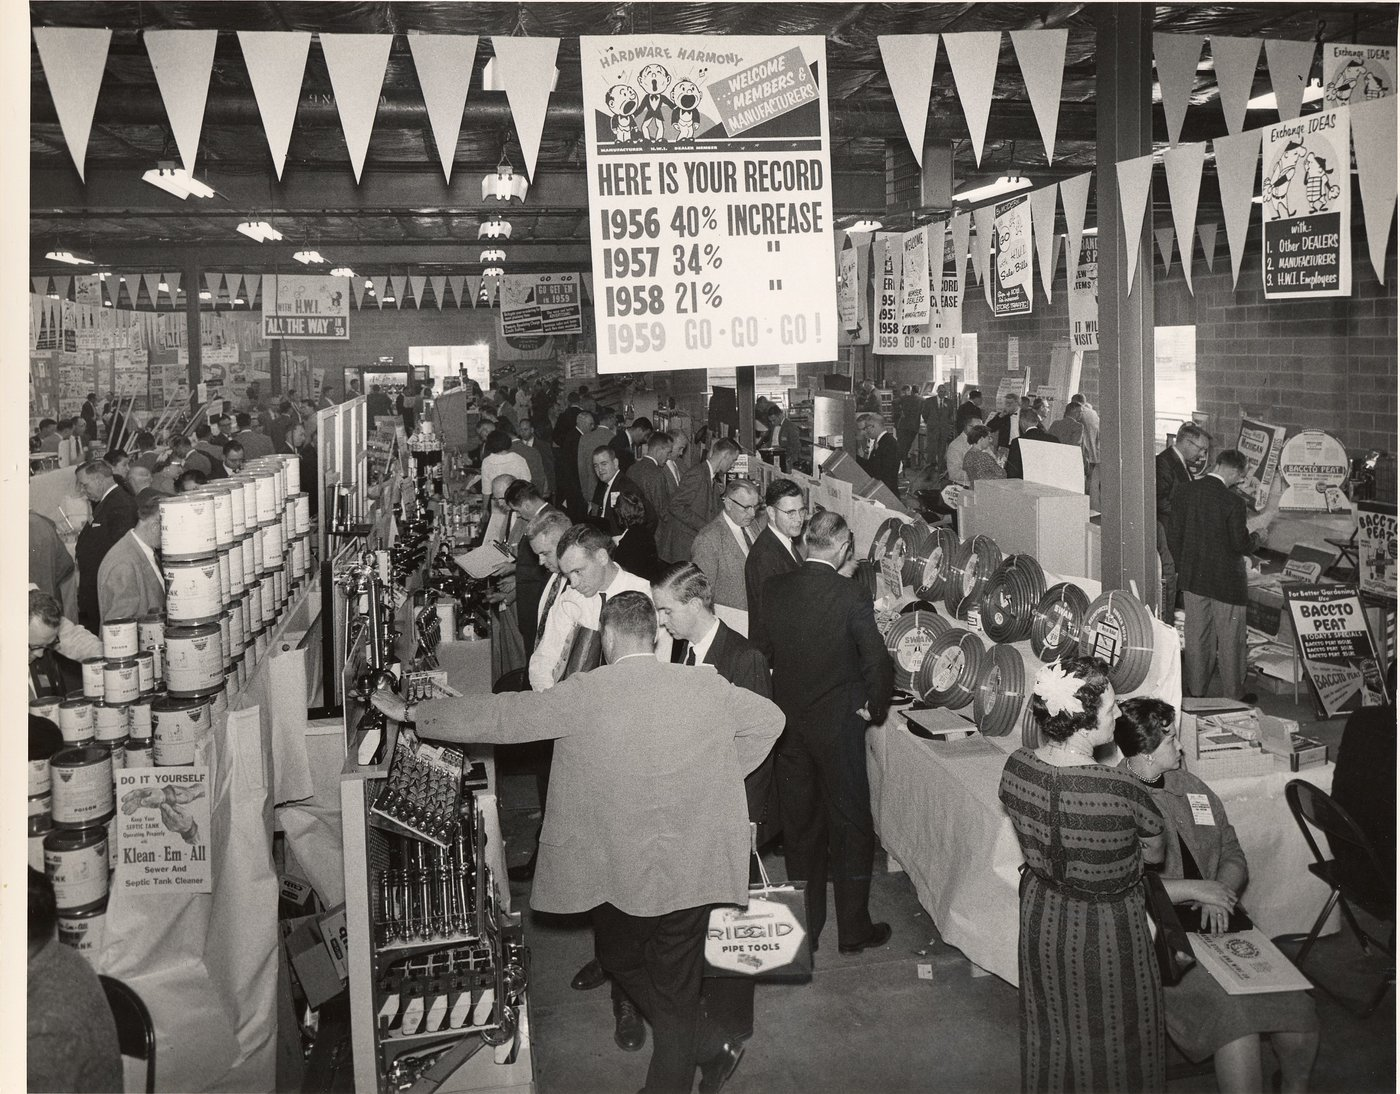 The co-op's buying market was held in the Fort Wayne warehouse for the last time in 1958, moving next to the Fort Wayne War Memorial Coliseum.